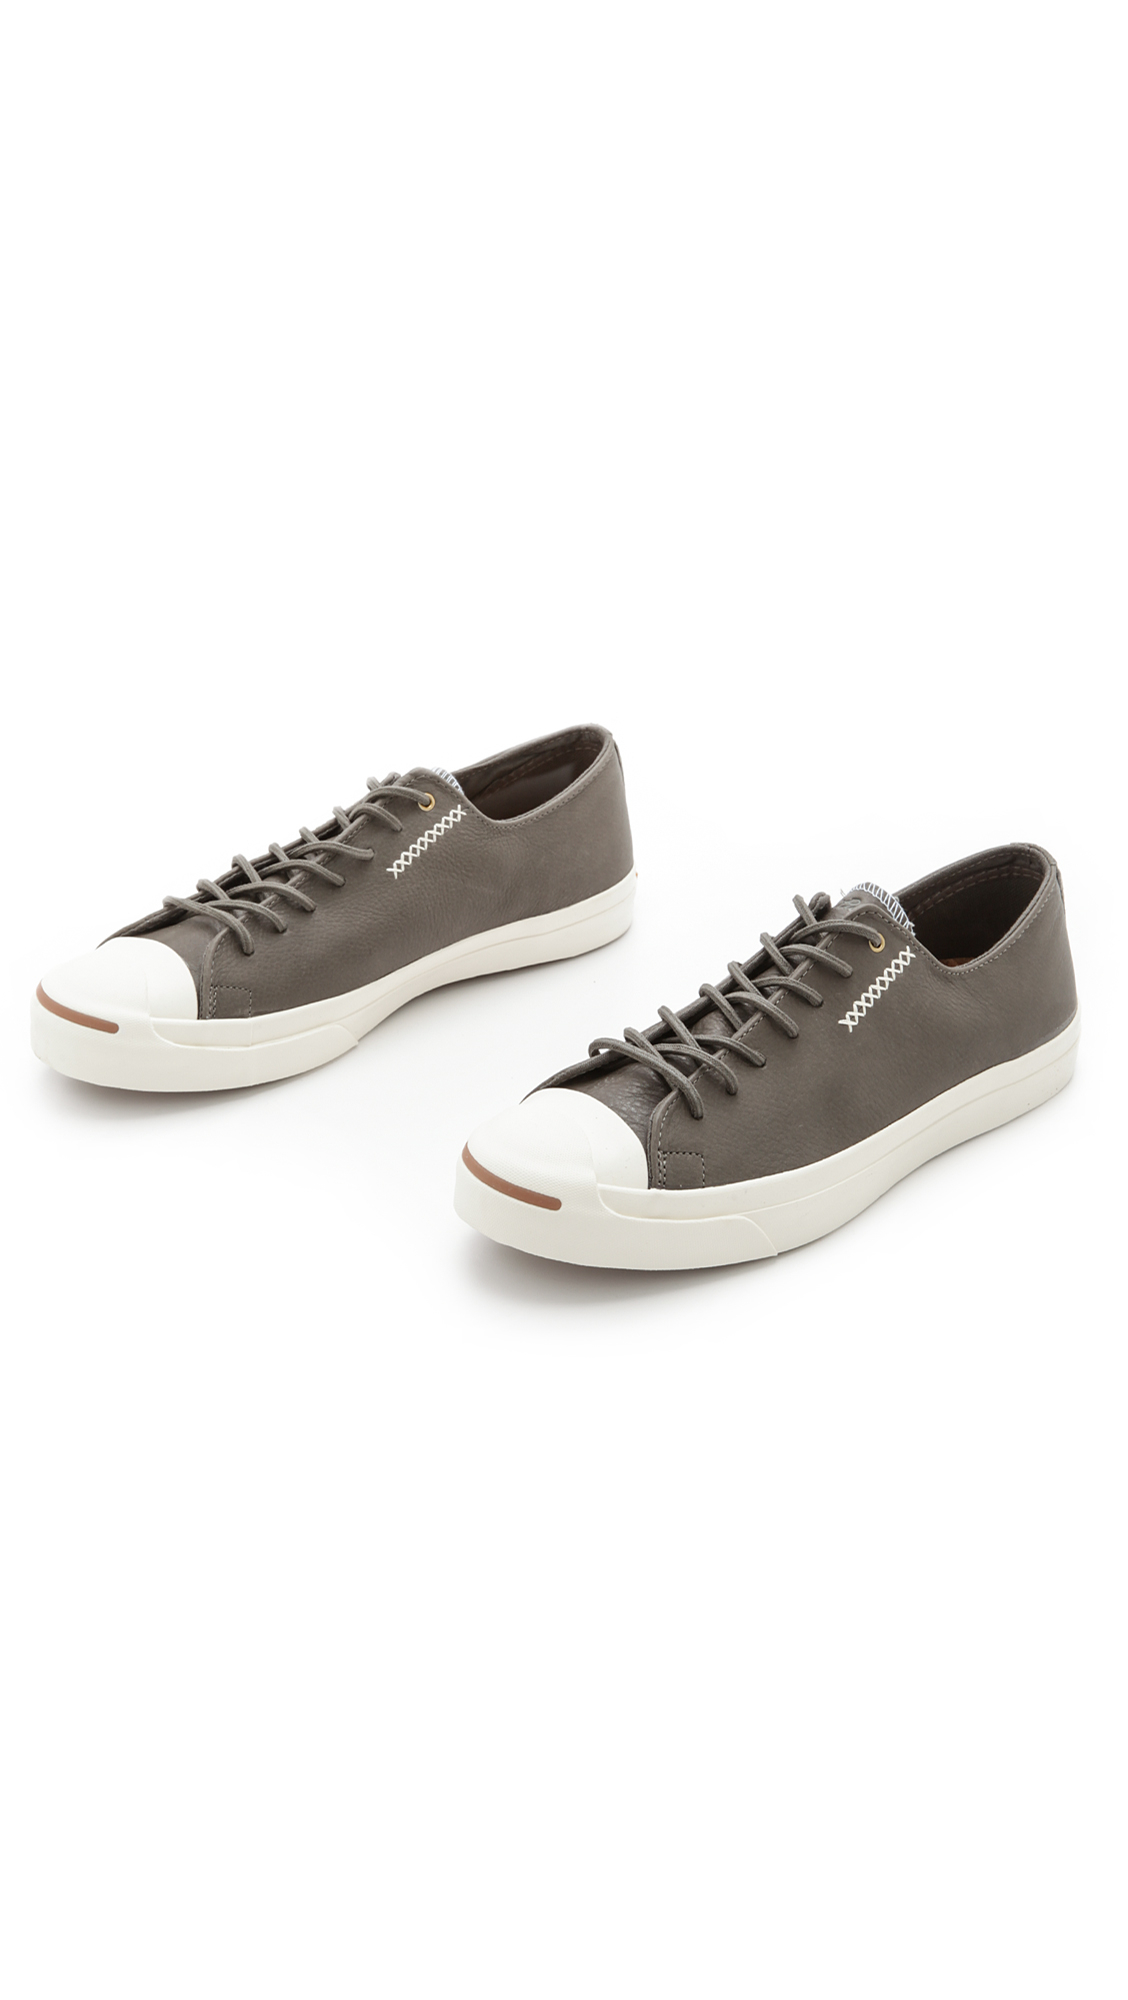 26a0c178c3a9 Lyst - Converse Jack Purcell Cross-Stitch Sneakers in Gray for Men